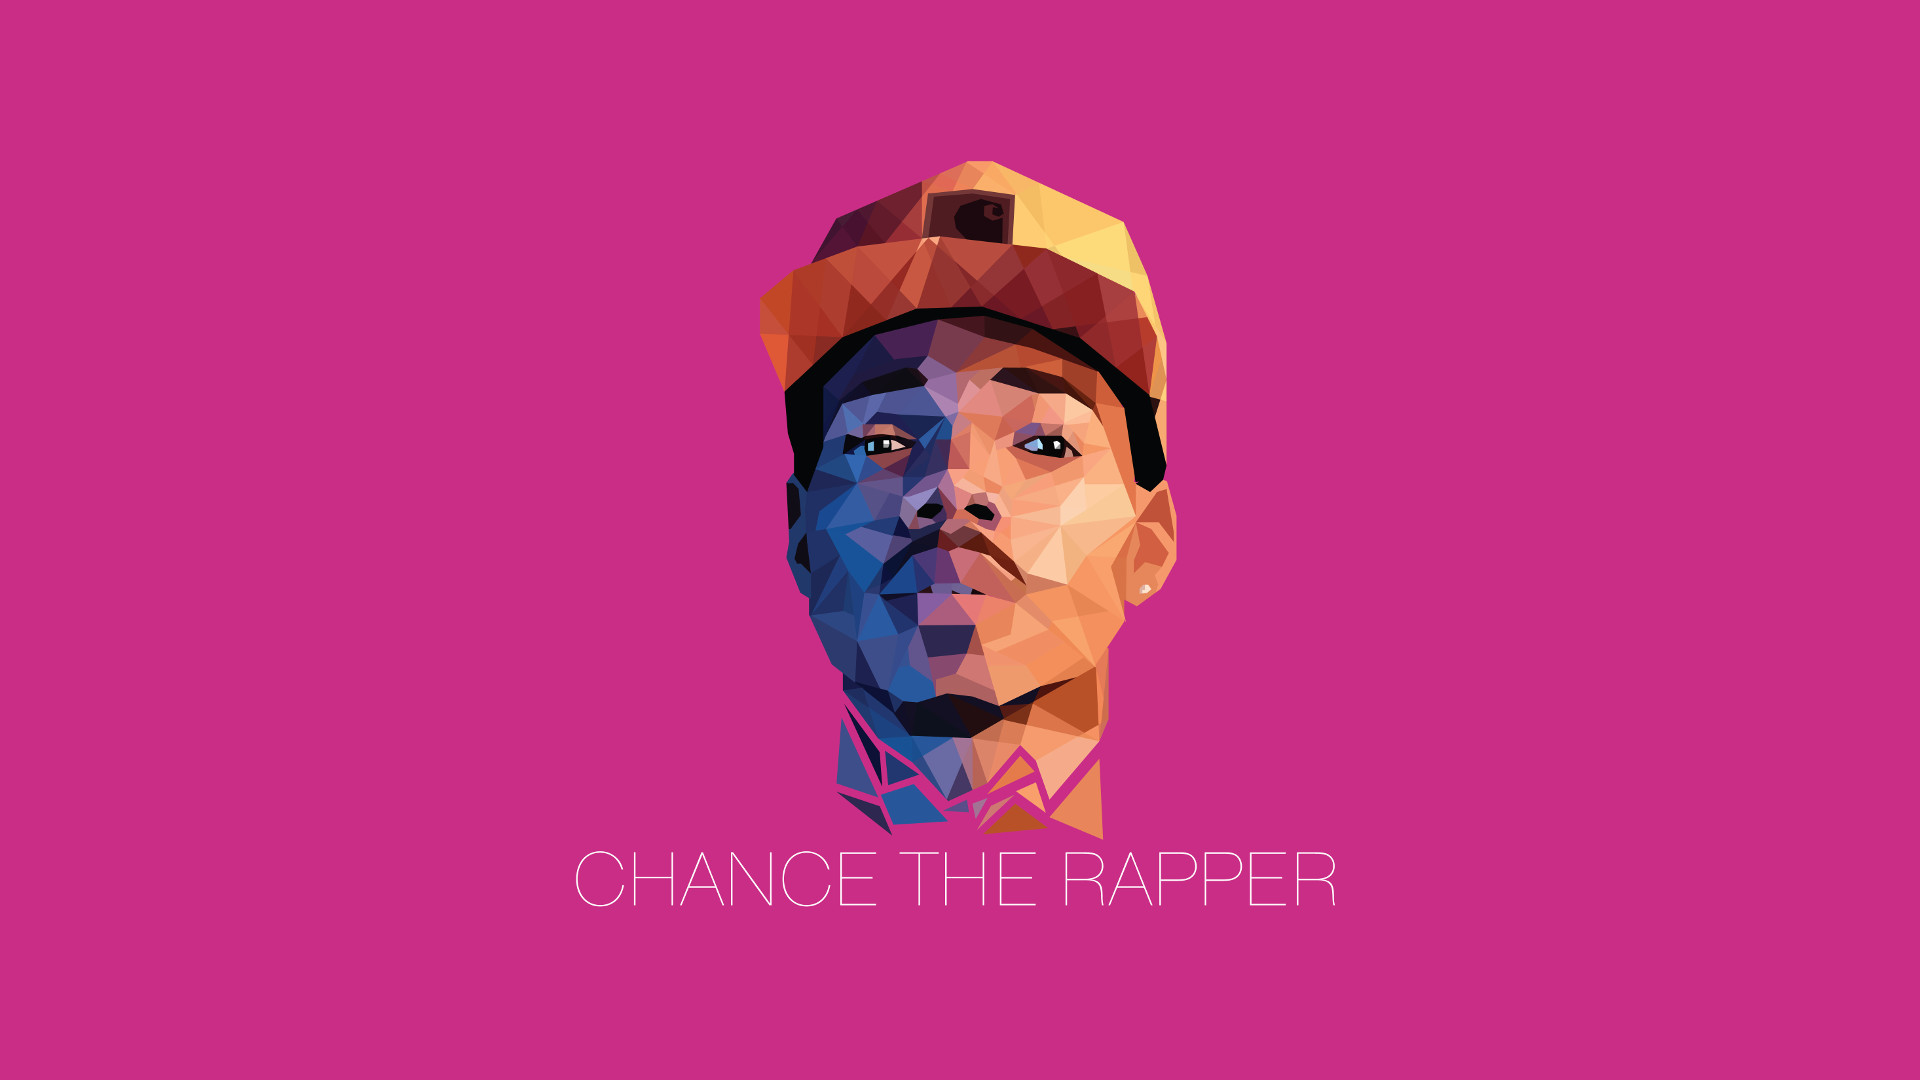 Chance The Rapper Wallpapers Wallpapertag